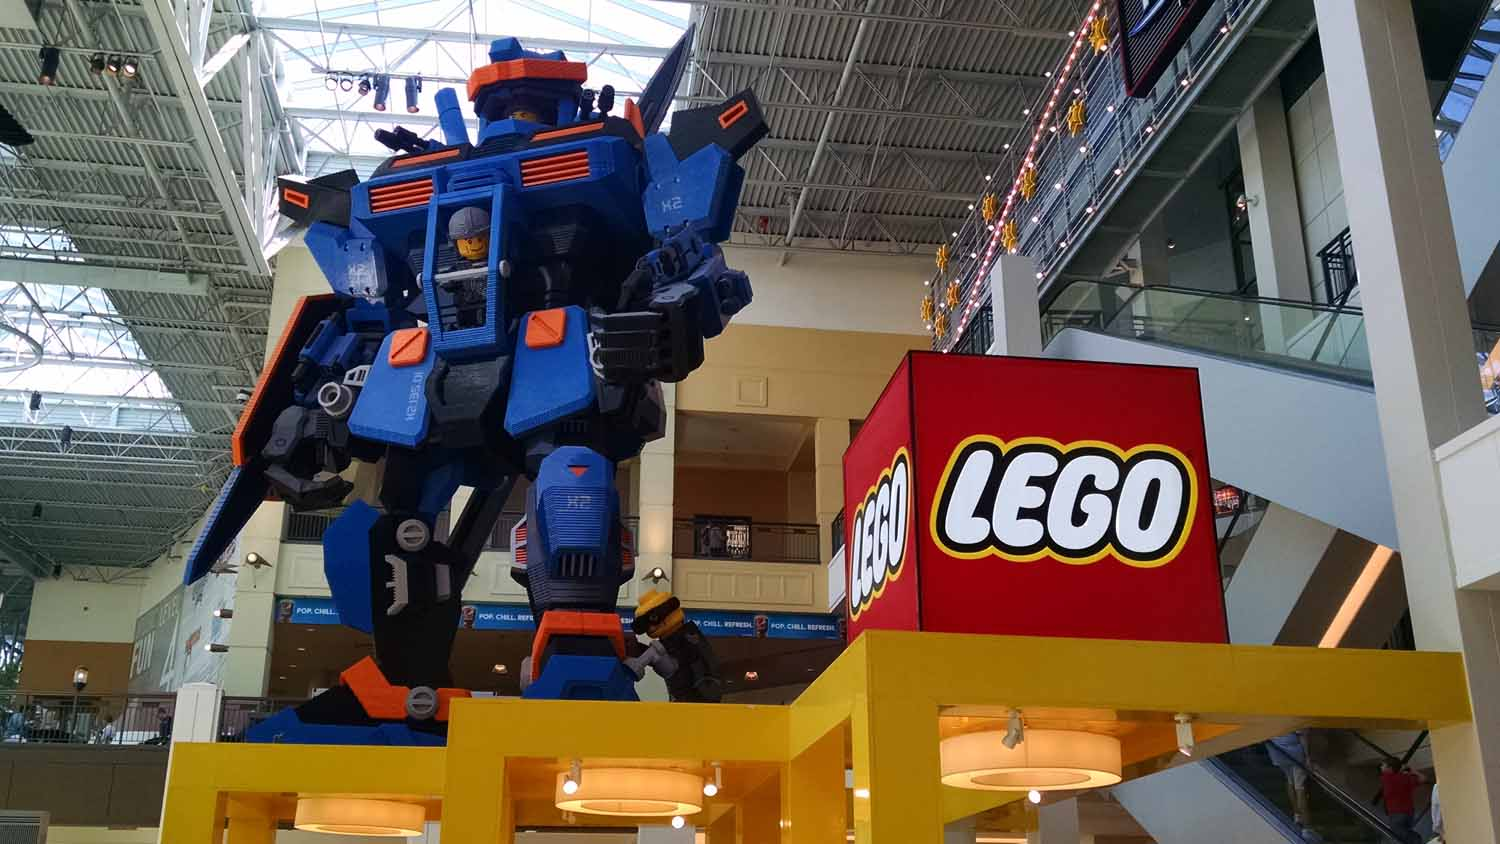 Great fun viewing the Lego displays...